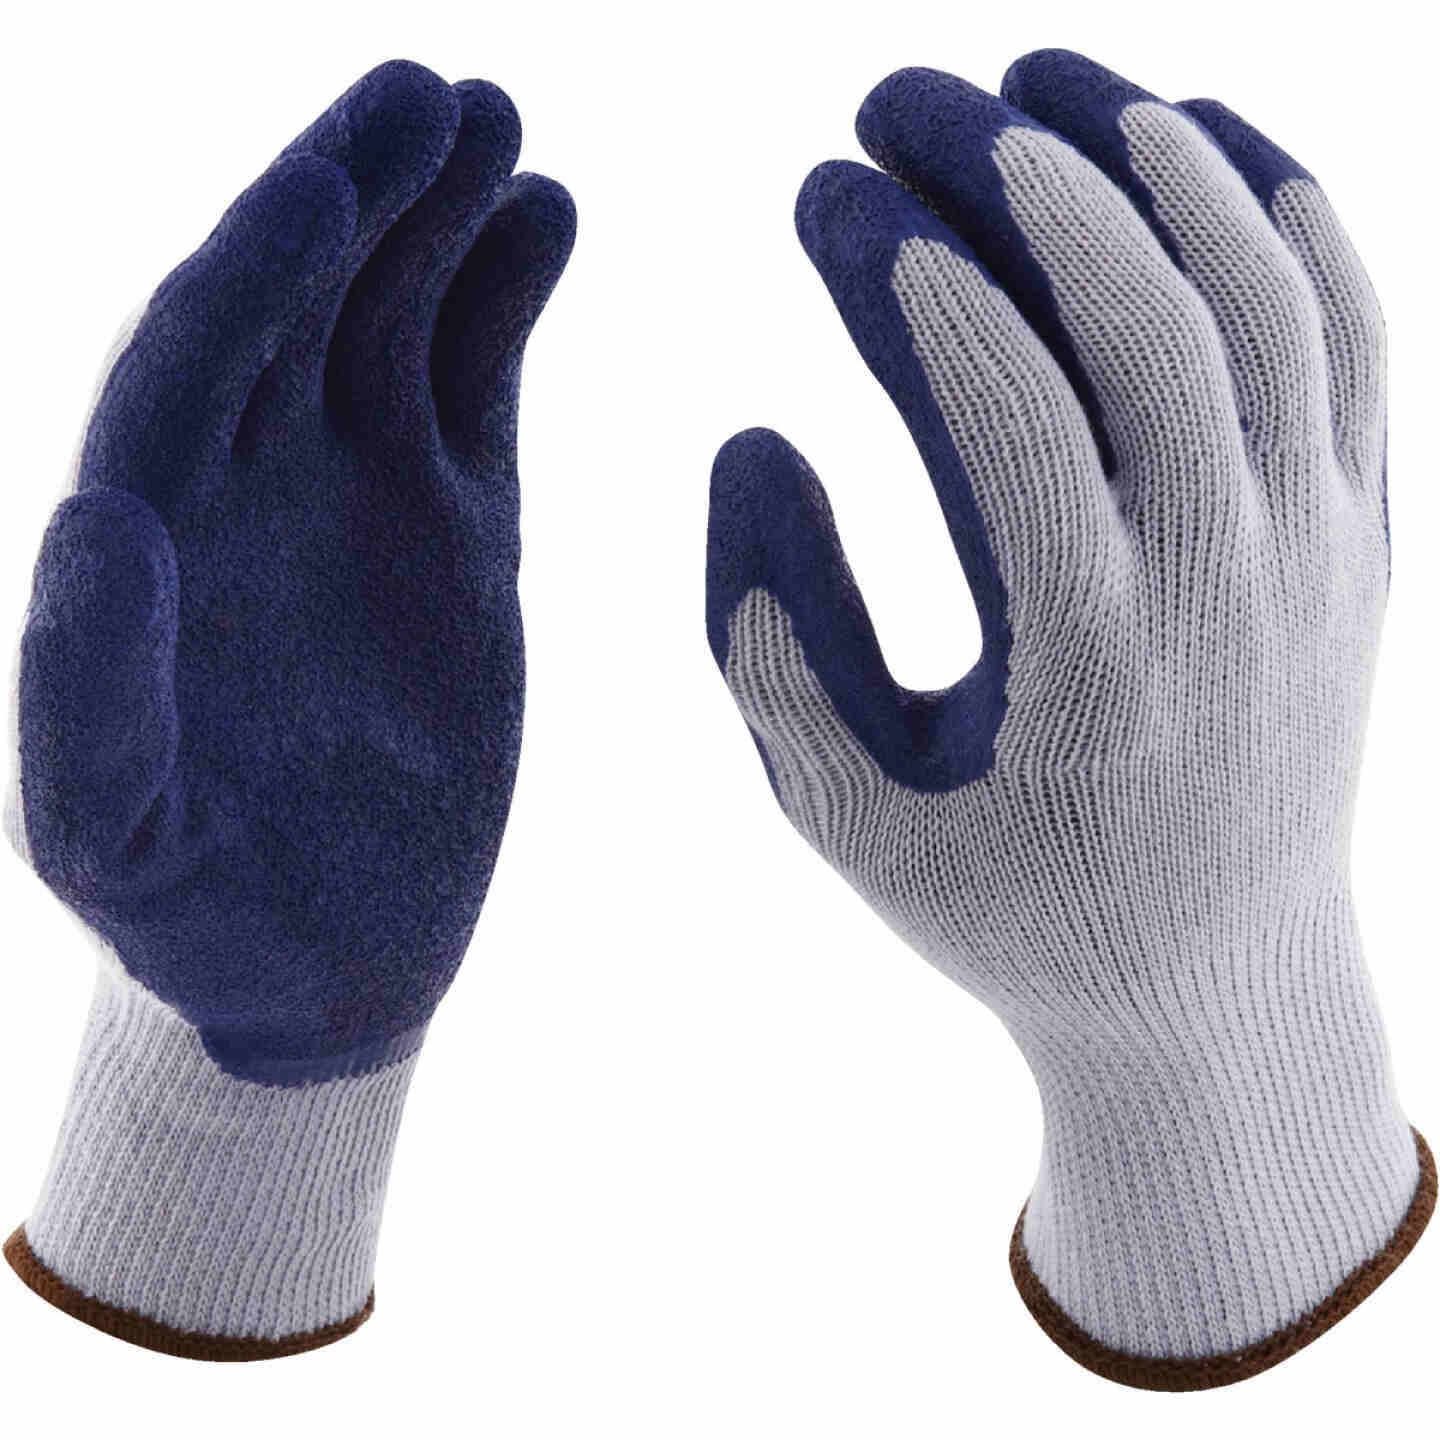 Do it Men's Large Grip Latex Coated Glove, Blue Image 3